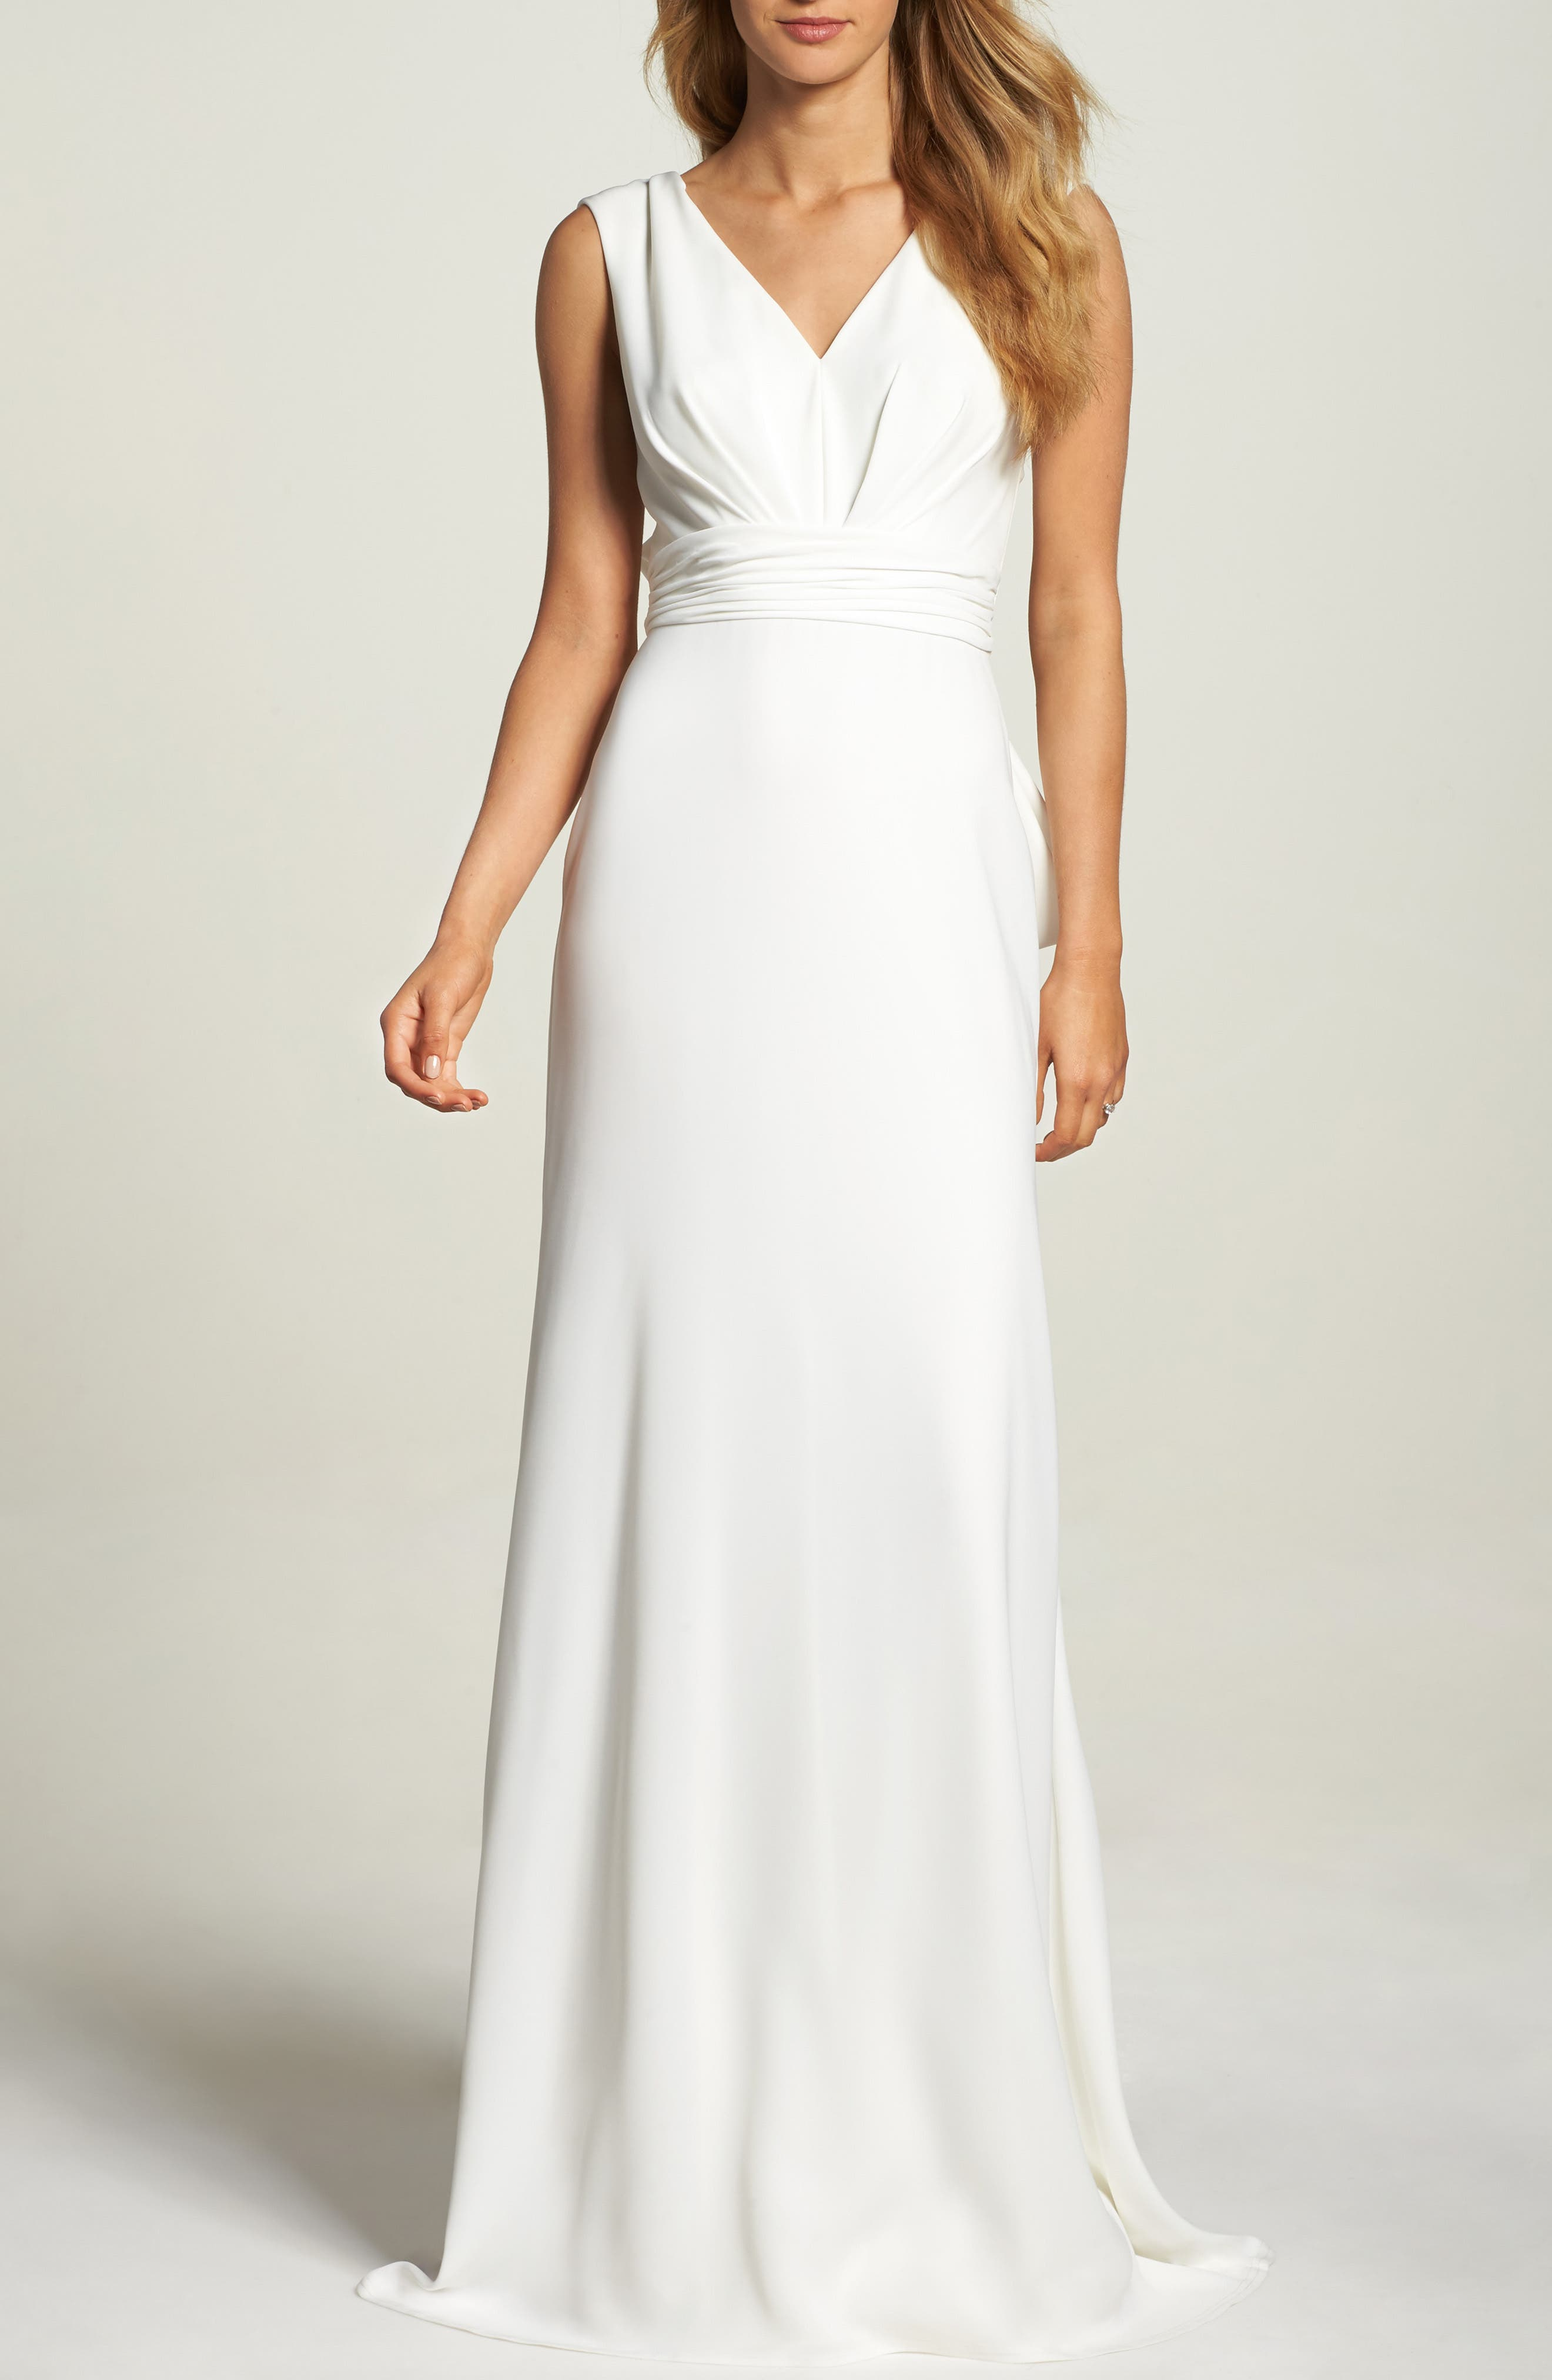 Statement Bow Crepe Gown,                             Main thumbnail 1, color,                             Ivory